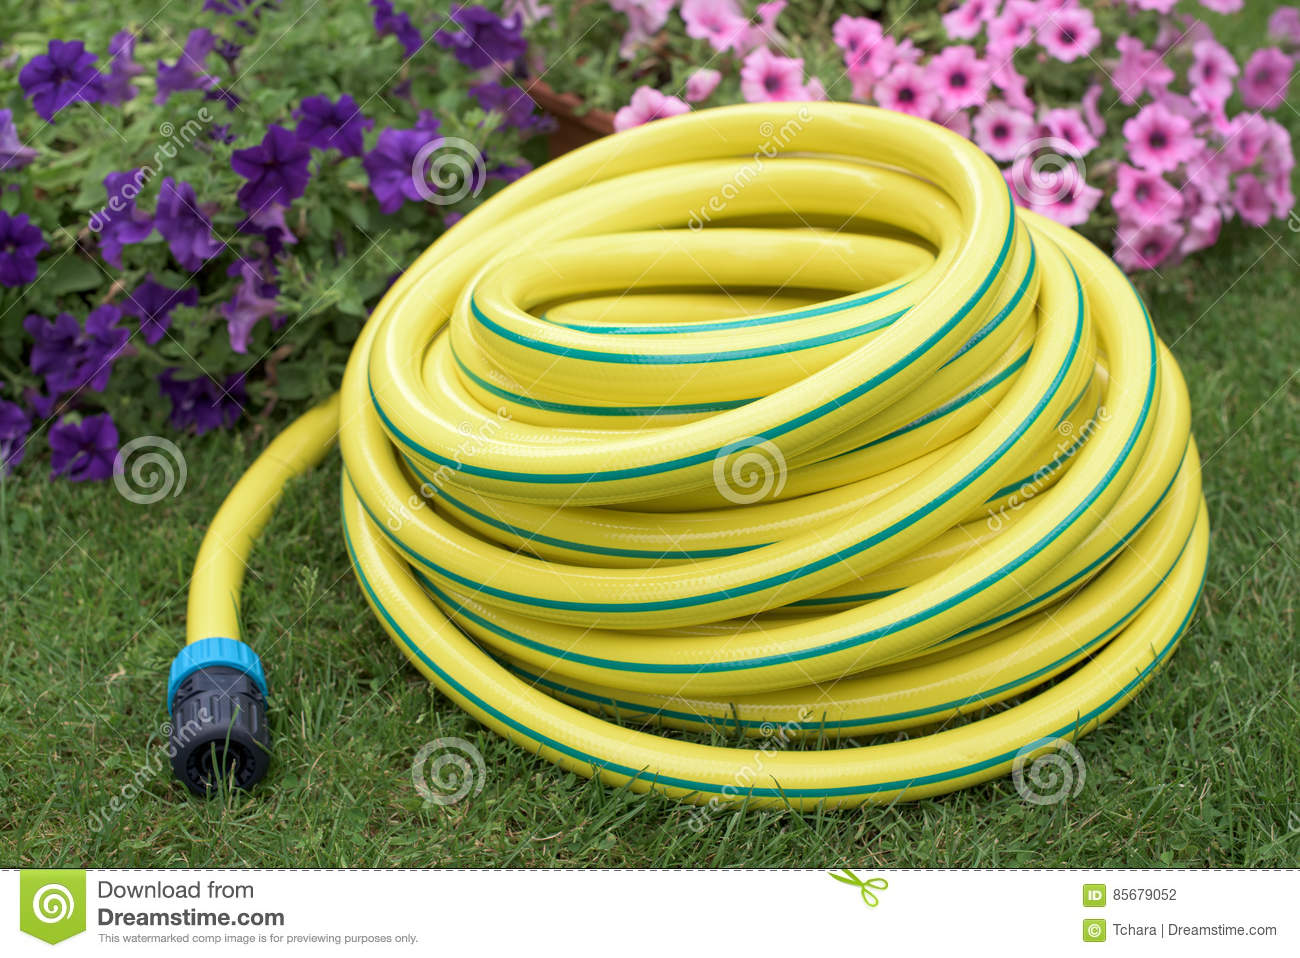 Garden yellow plastic hose-pipe